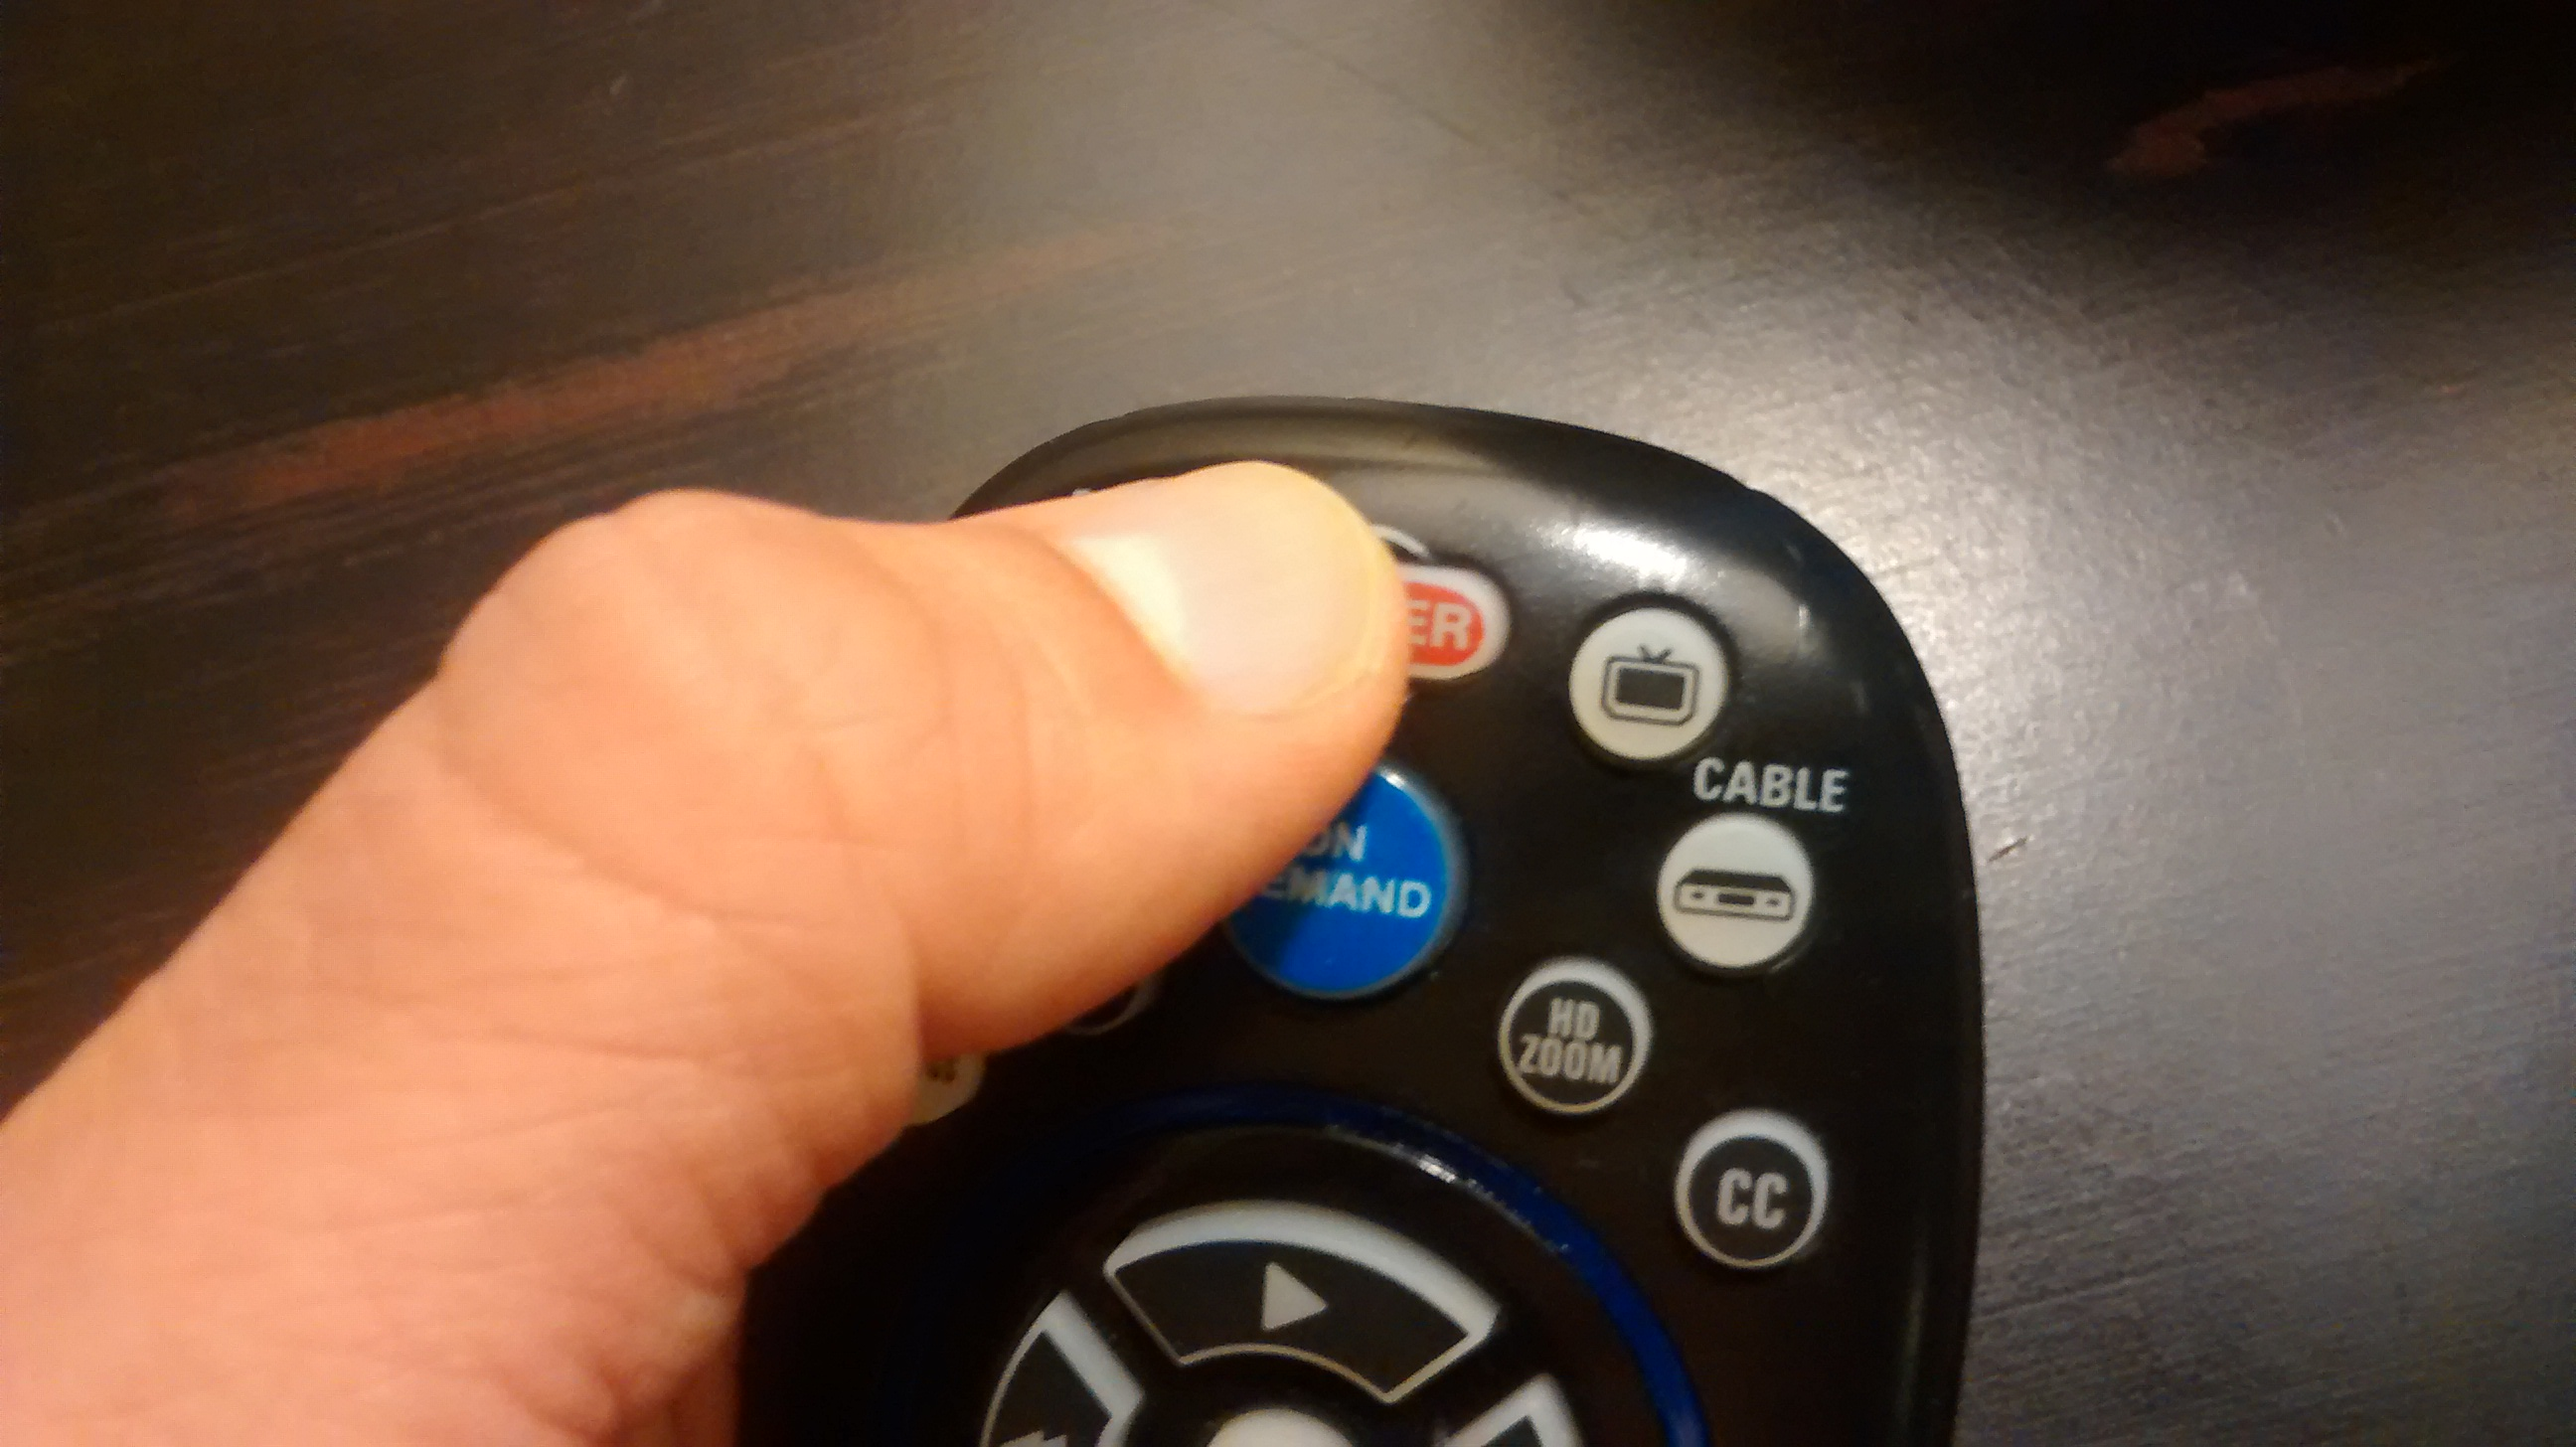 Test Cox remote to TV